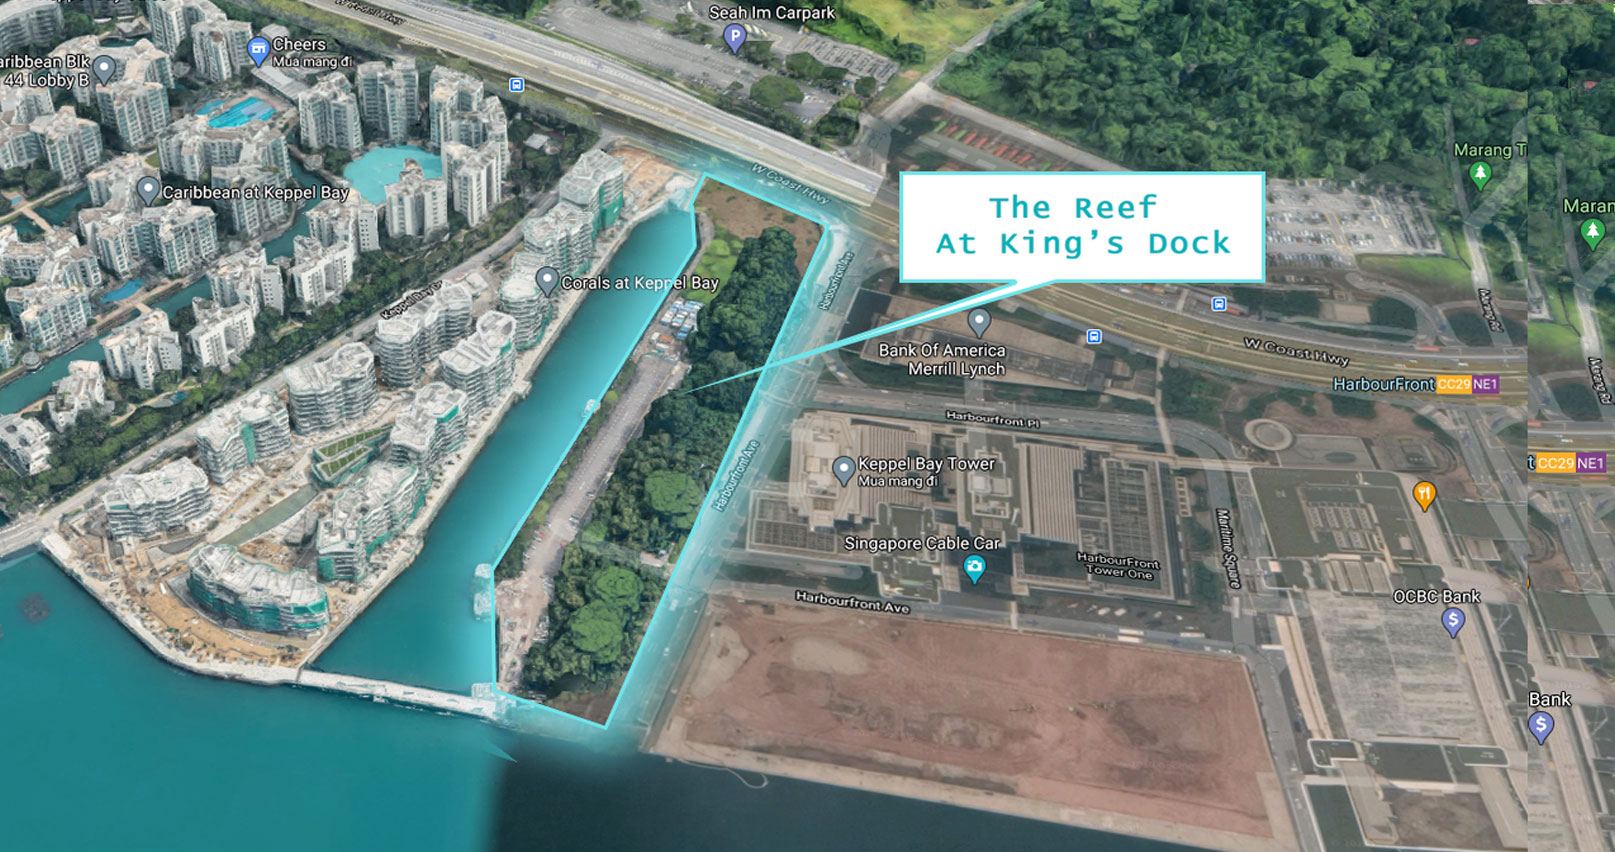 The Reef At King's Dock land site